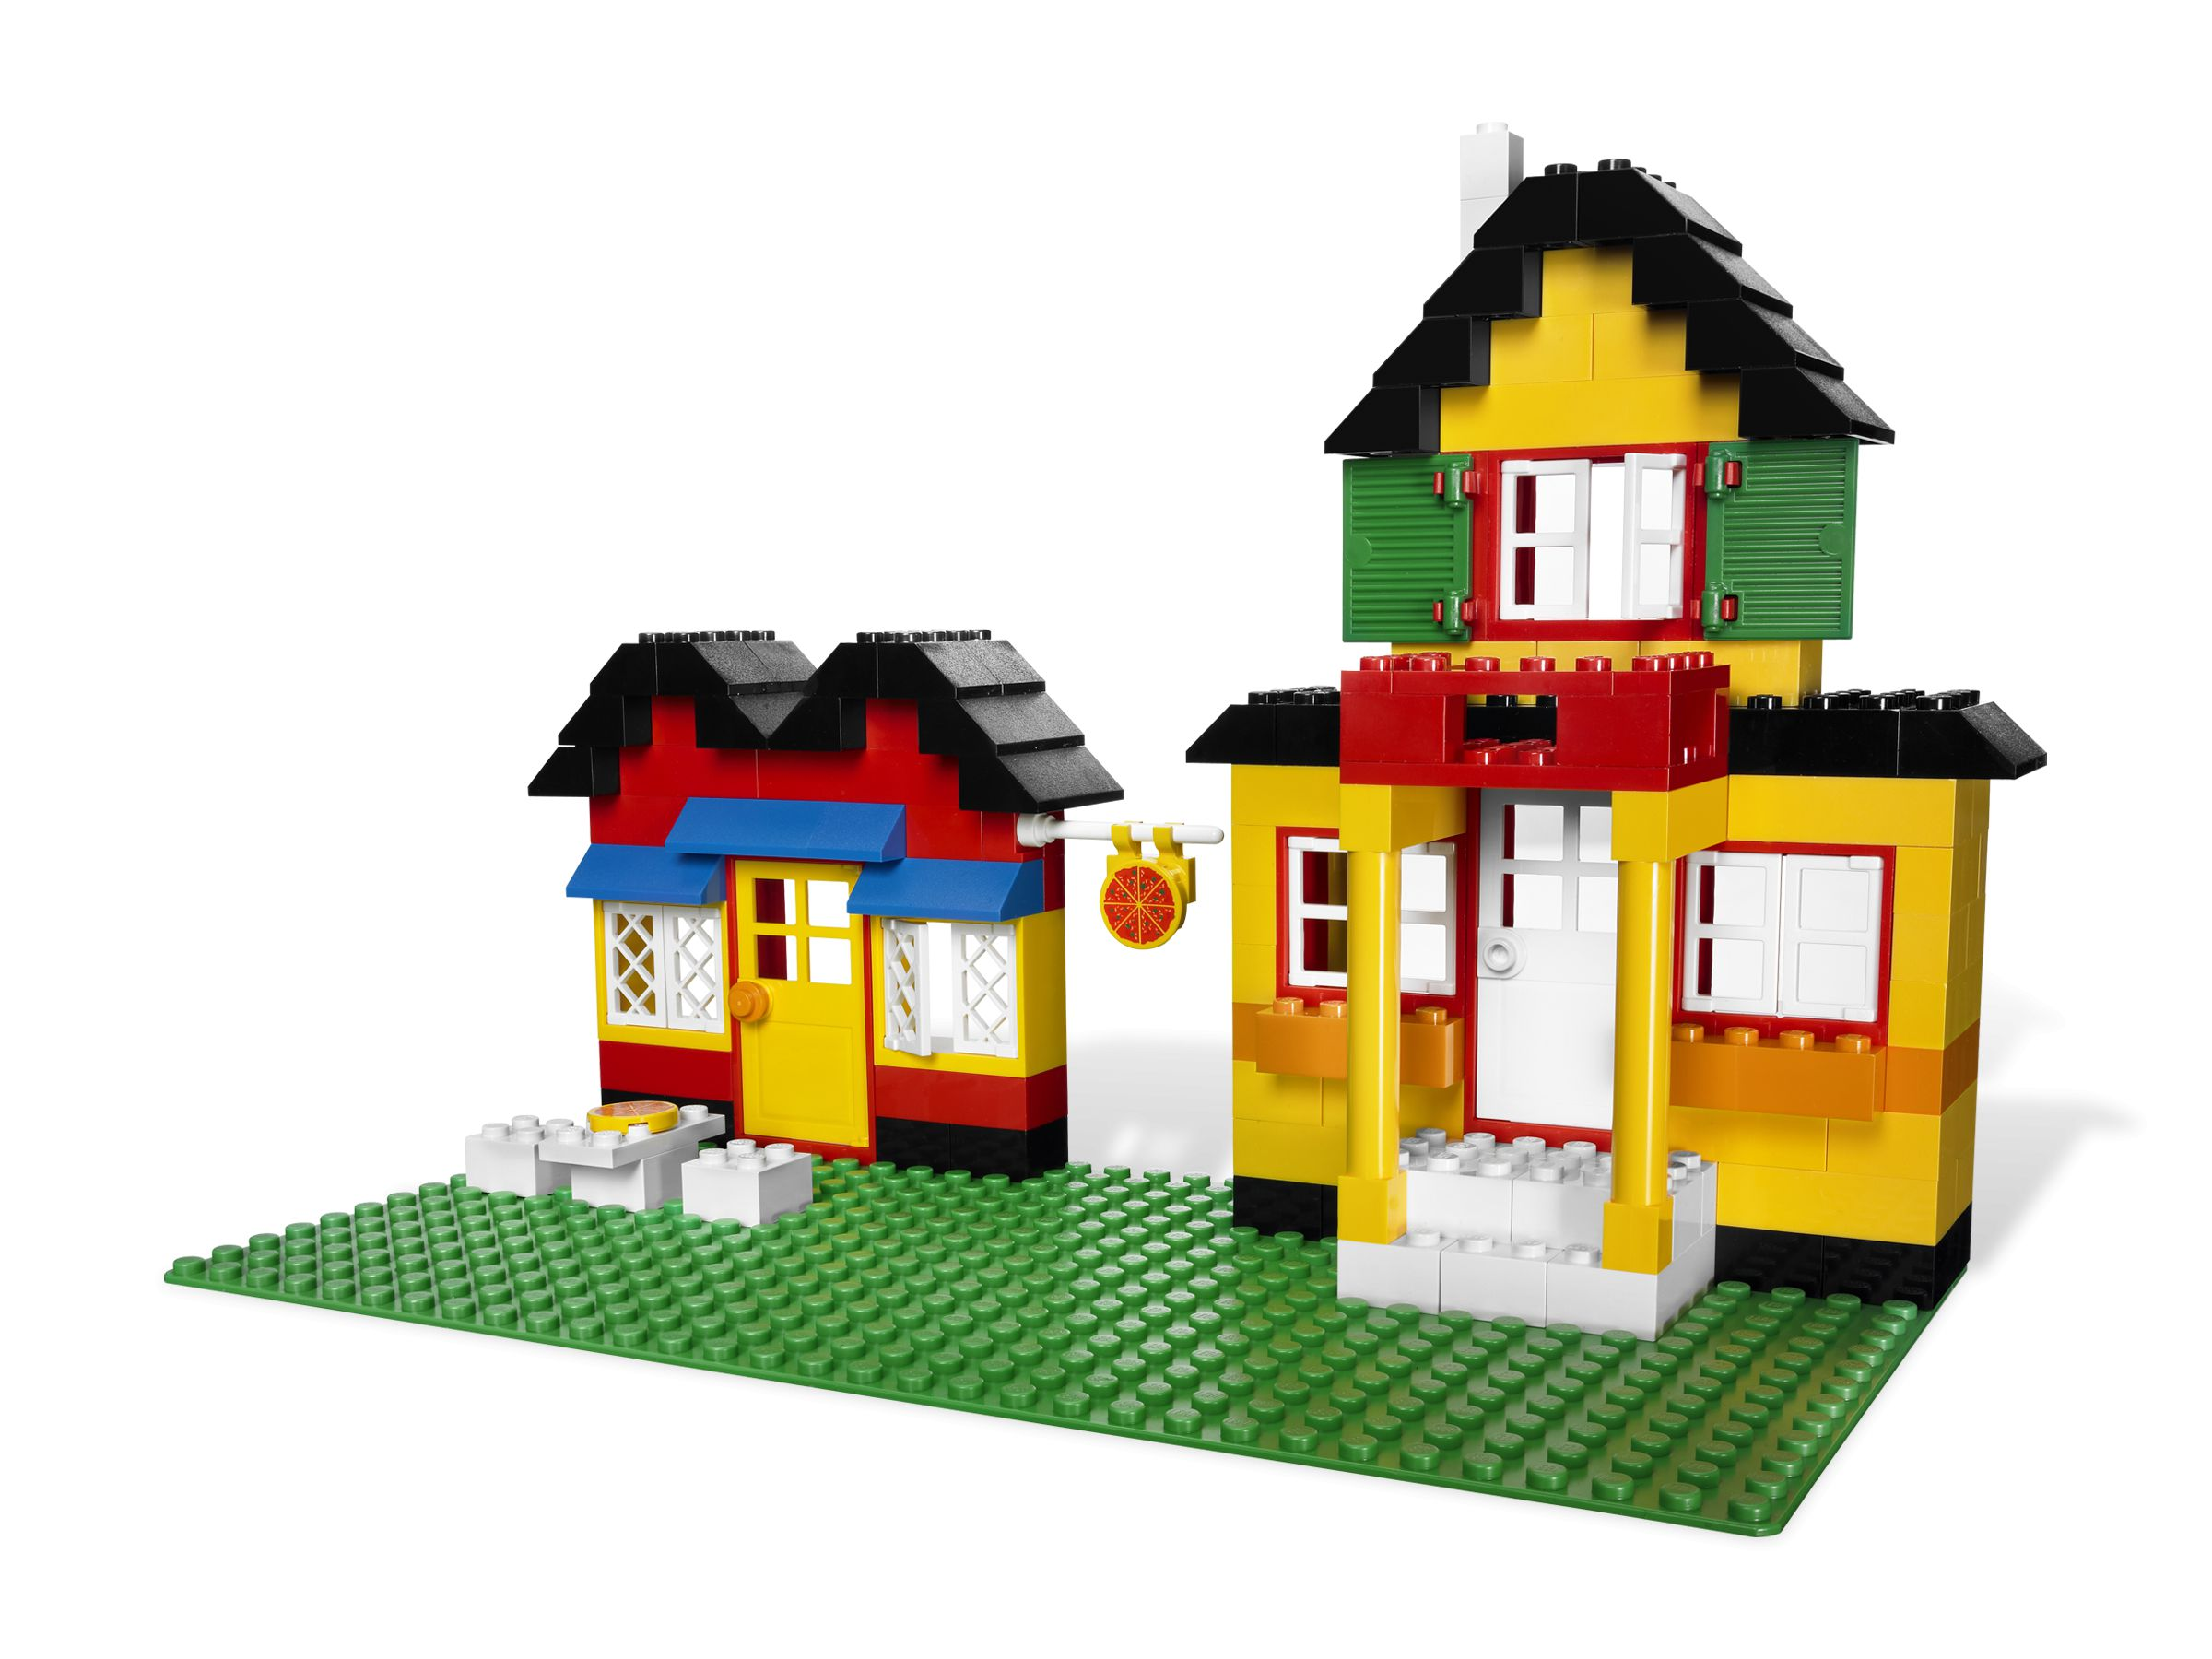 LEGO Bricks and More 5508 Deluxe Steinebox LEGO_5508_alt3.jpg